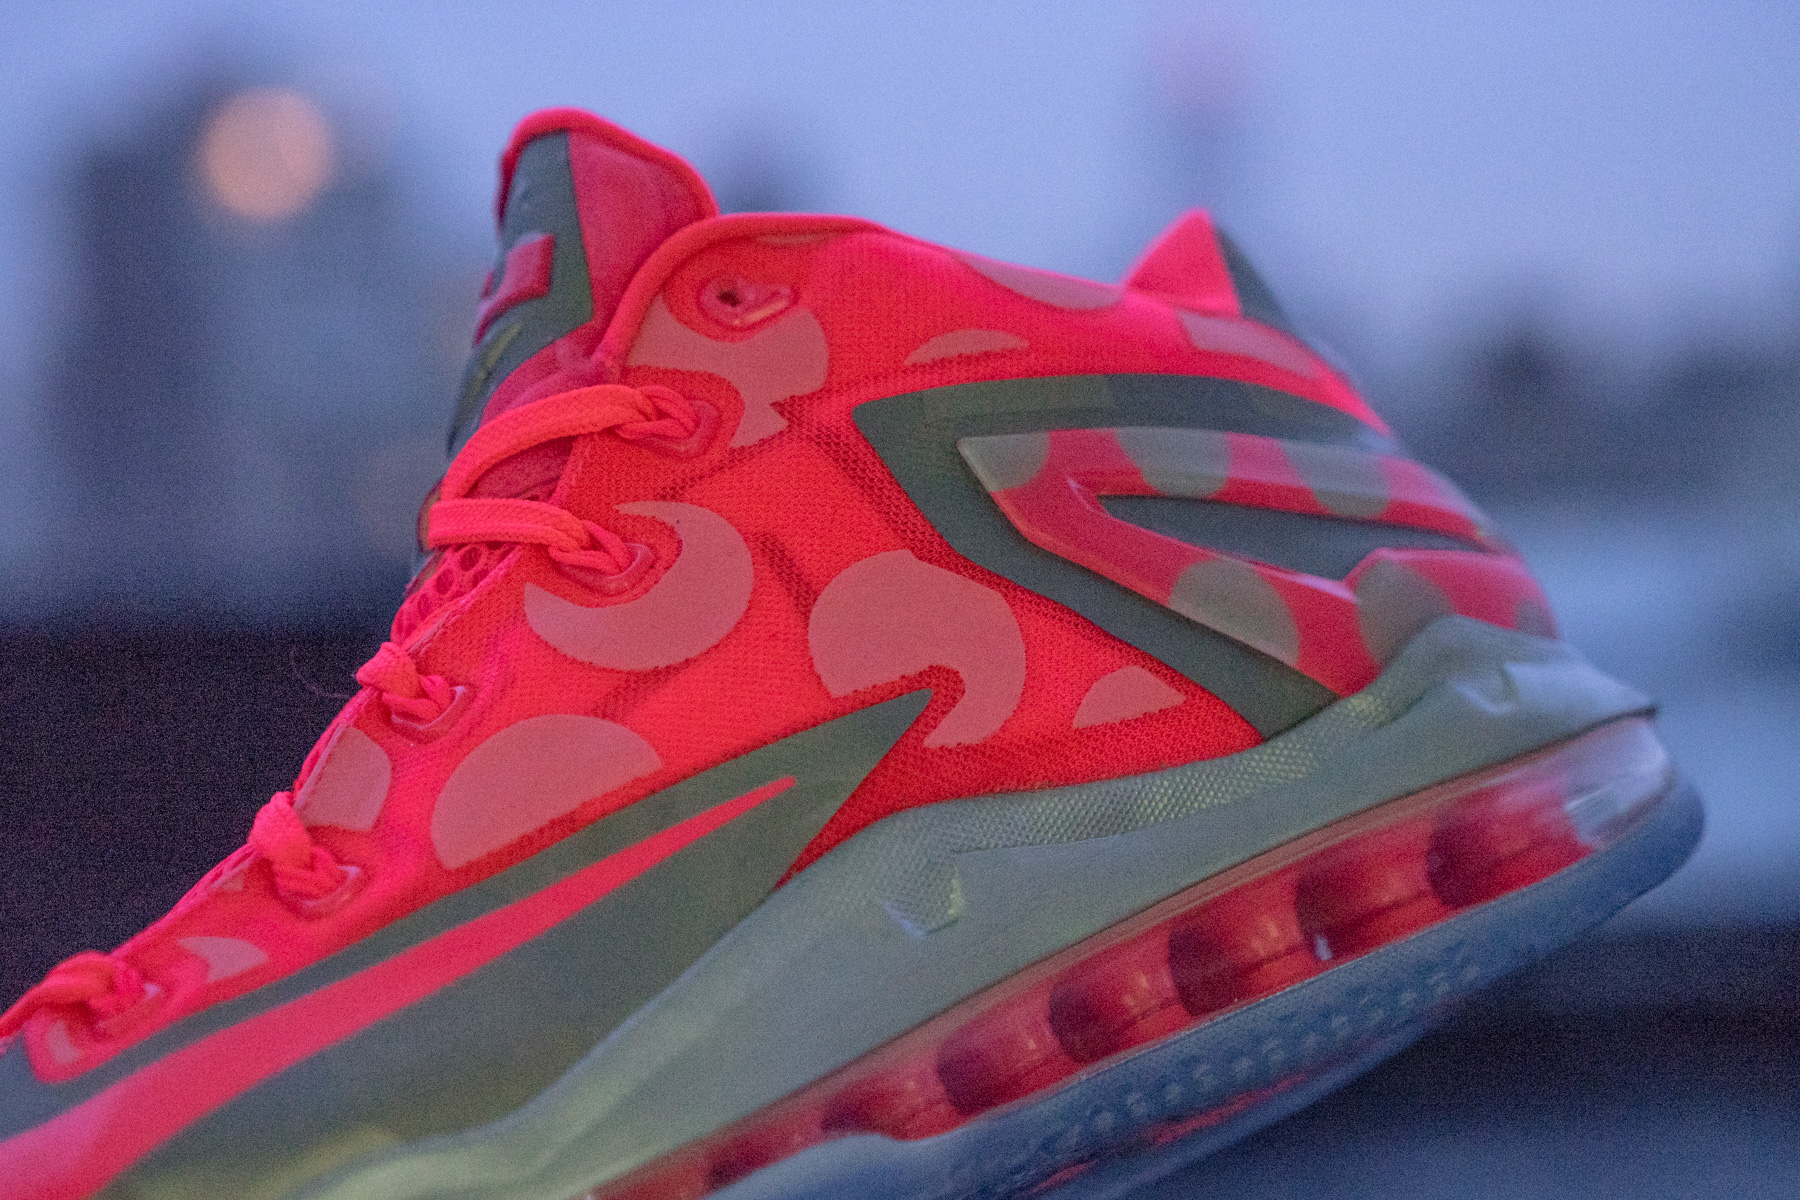 Nike LeBron 11 'Maison LeBron' Collection-34